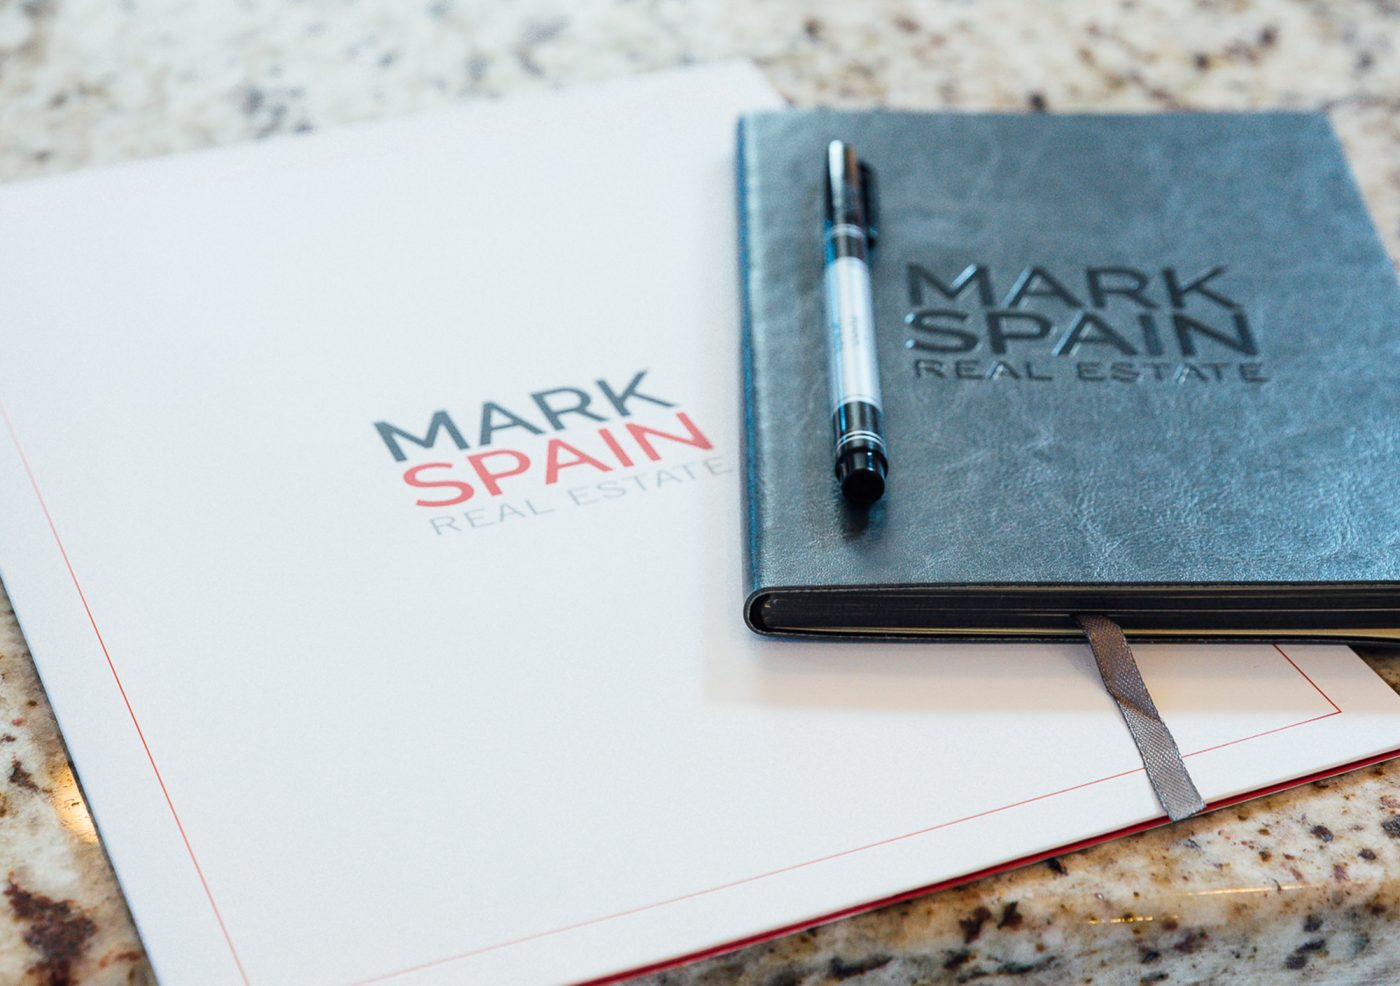 Sell your home in Atlanta with Mark Spain Real Estate